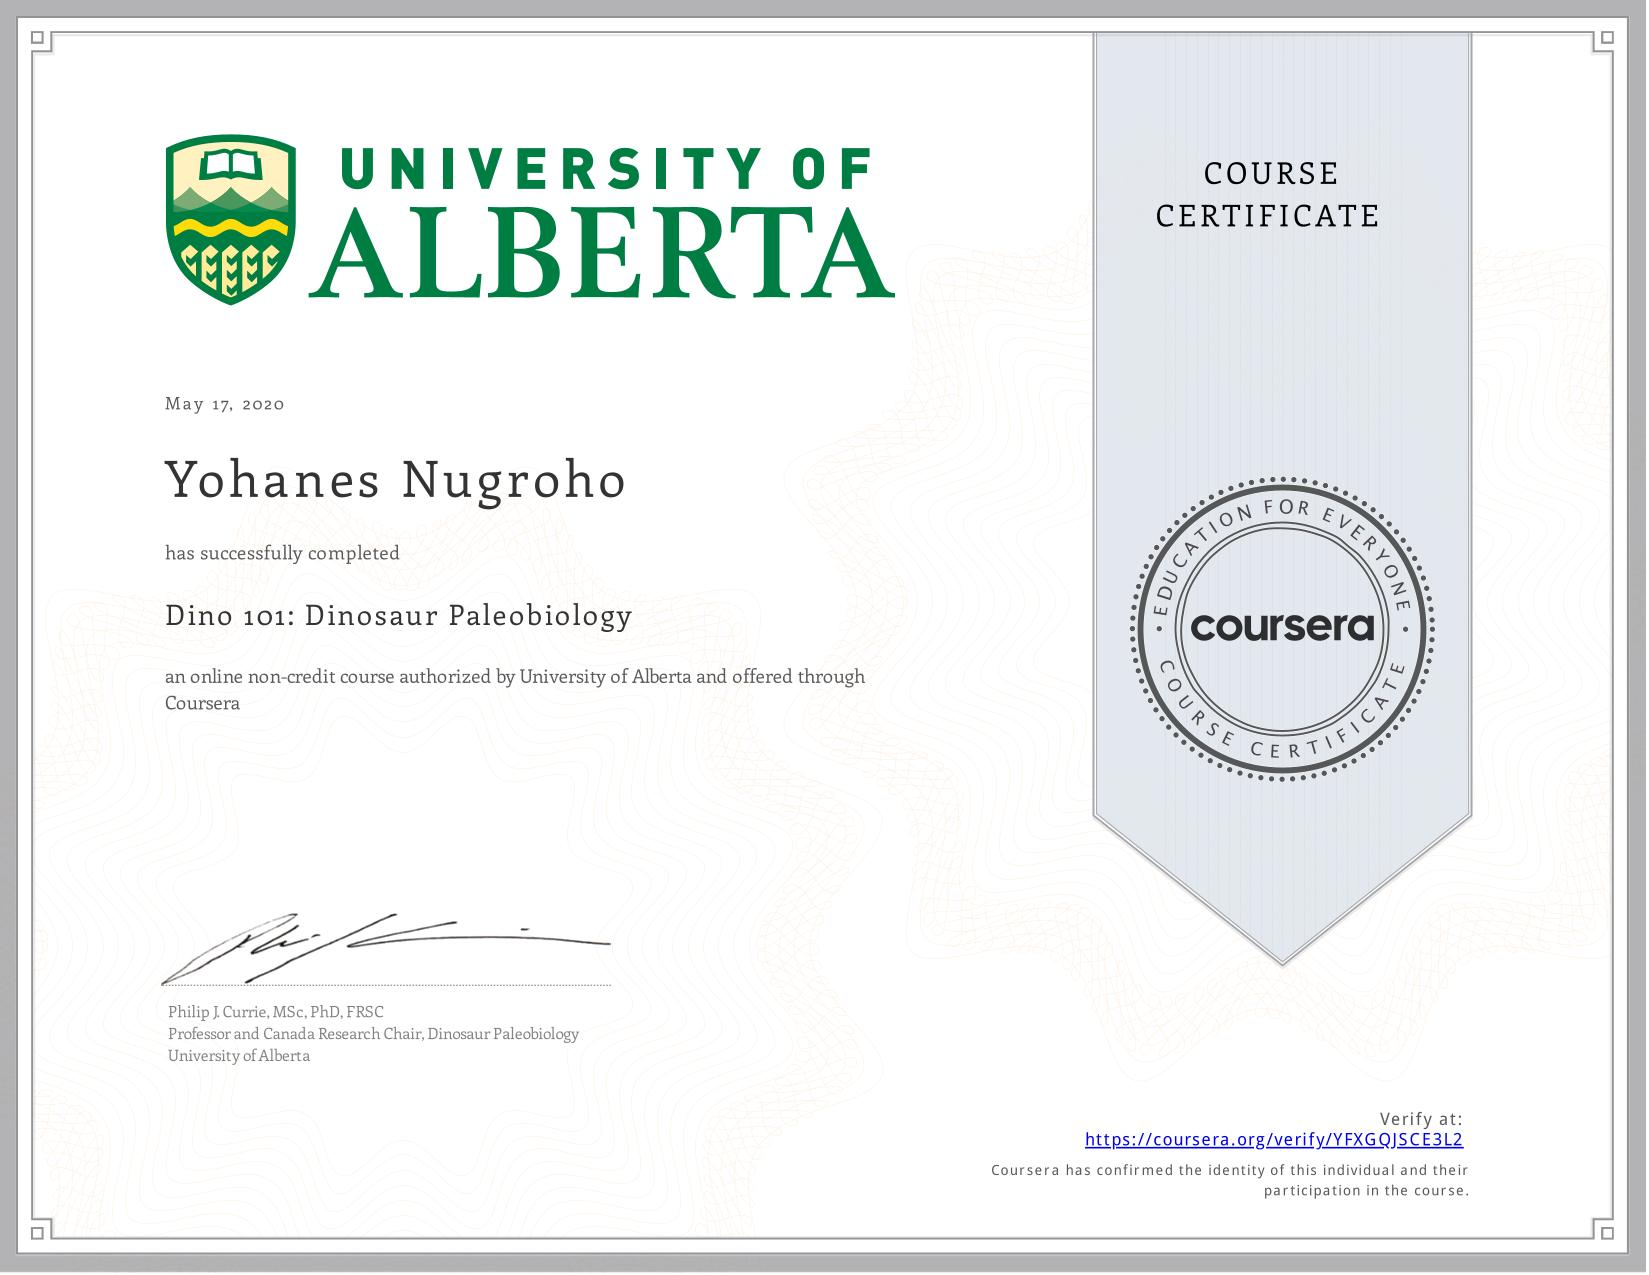 View certificate for Yohanes Nugroho, Dino 101: Dinosaur Paleobiology, an online non-credit course authorized by  & University of Alberta and offered through Coursera